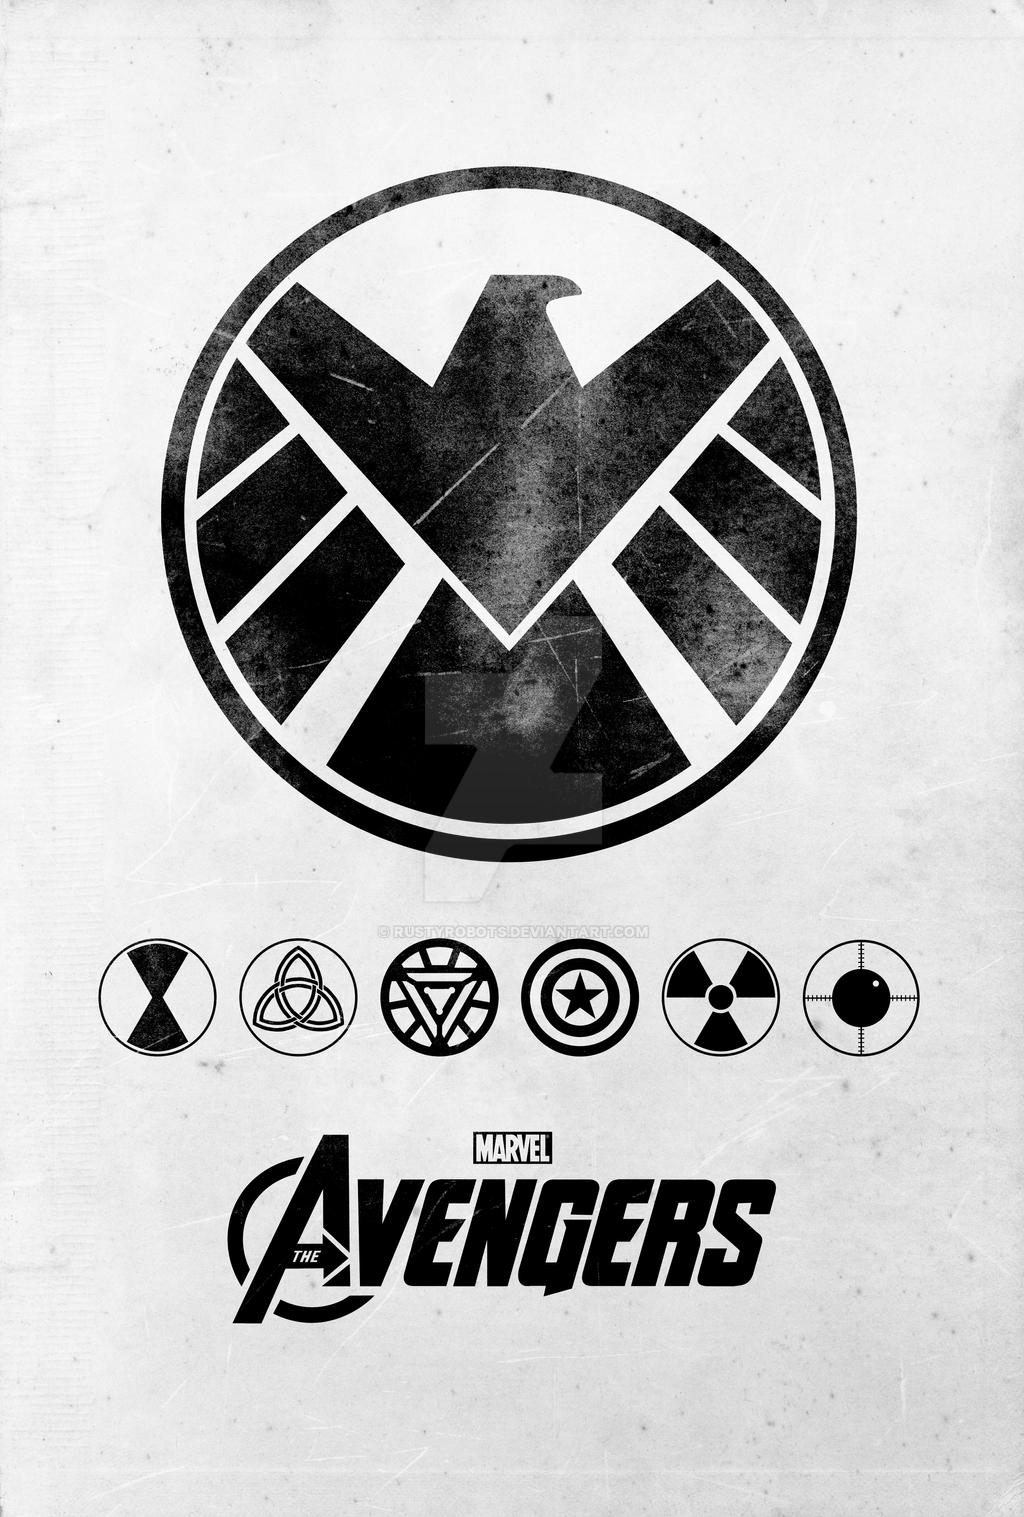 Avengers Poster by RustyRobots on DeviantArt